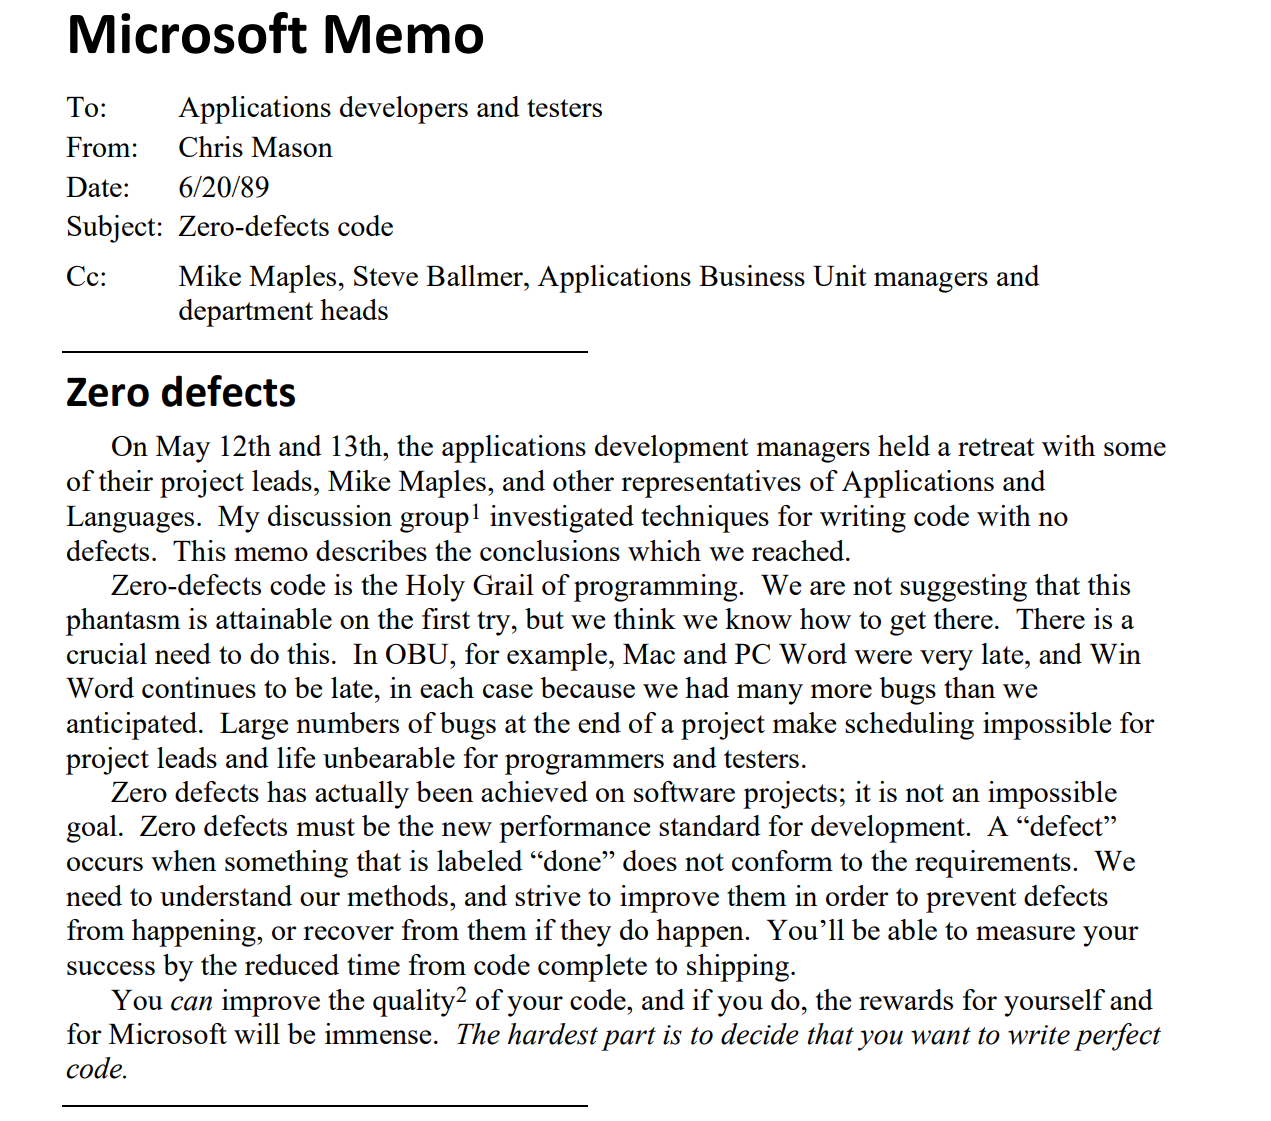 "Microsoft Memo To: Applications developers and testers From: Chris Mason Date: 6/20/89 Subject: Zero-defects code Cc: Mike Maples, Steve Ballmer, Applications Business Unit managers and department heads Zero defects On May 12th and 13th, the applications development managers held a retreat with some of their project leads, Mike Maples, and other representatives of Applications and Languages. My discussion group1 investigated techniques for writing code with no defects. This memo describes the conclusions which we reached. Zero-defects code is the Holy Grail of programming. We are not suggesting that this phantasm is attainable on the first try, but we think we know how to get there. There is a crucial need to do this. In OBU, for example, Mac and PC Word were very late, and Win Word continues to be late, in each case because we had many more bugs than we anticipated. Large numbers of bugs at the end of a project make scheduling impossible for project leads and life unbearable for programmers and testers. Zero defects has actually been achieved on software projects; it is not an impossible goal. Zero defects must be the new performance standard for development. A ""defect"" occurs when something that is labeled ""done"" does not conform to the requirements. We need to understand our methods, and strive to improve them in order to prevent defects from happening, or recover from them if they do happen. You'll be able to measure your success by the reduced time from code complete to shipping. You can improve the quality2 of your code, and if you do, the rewards for yourself and for Microsoft will be immense. The hardest part is to decide that you want to write perfect code."